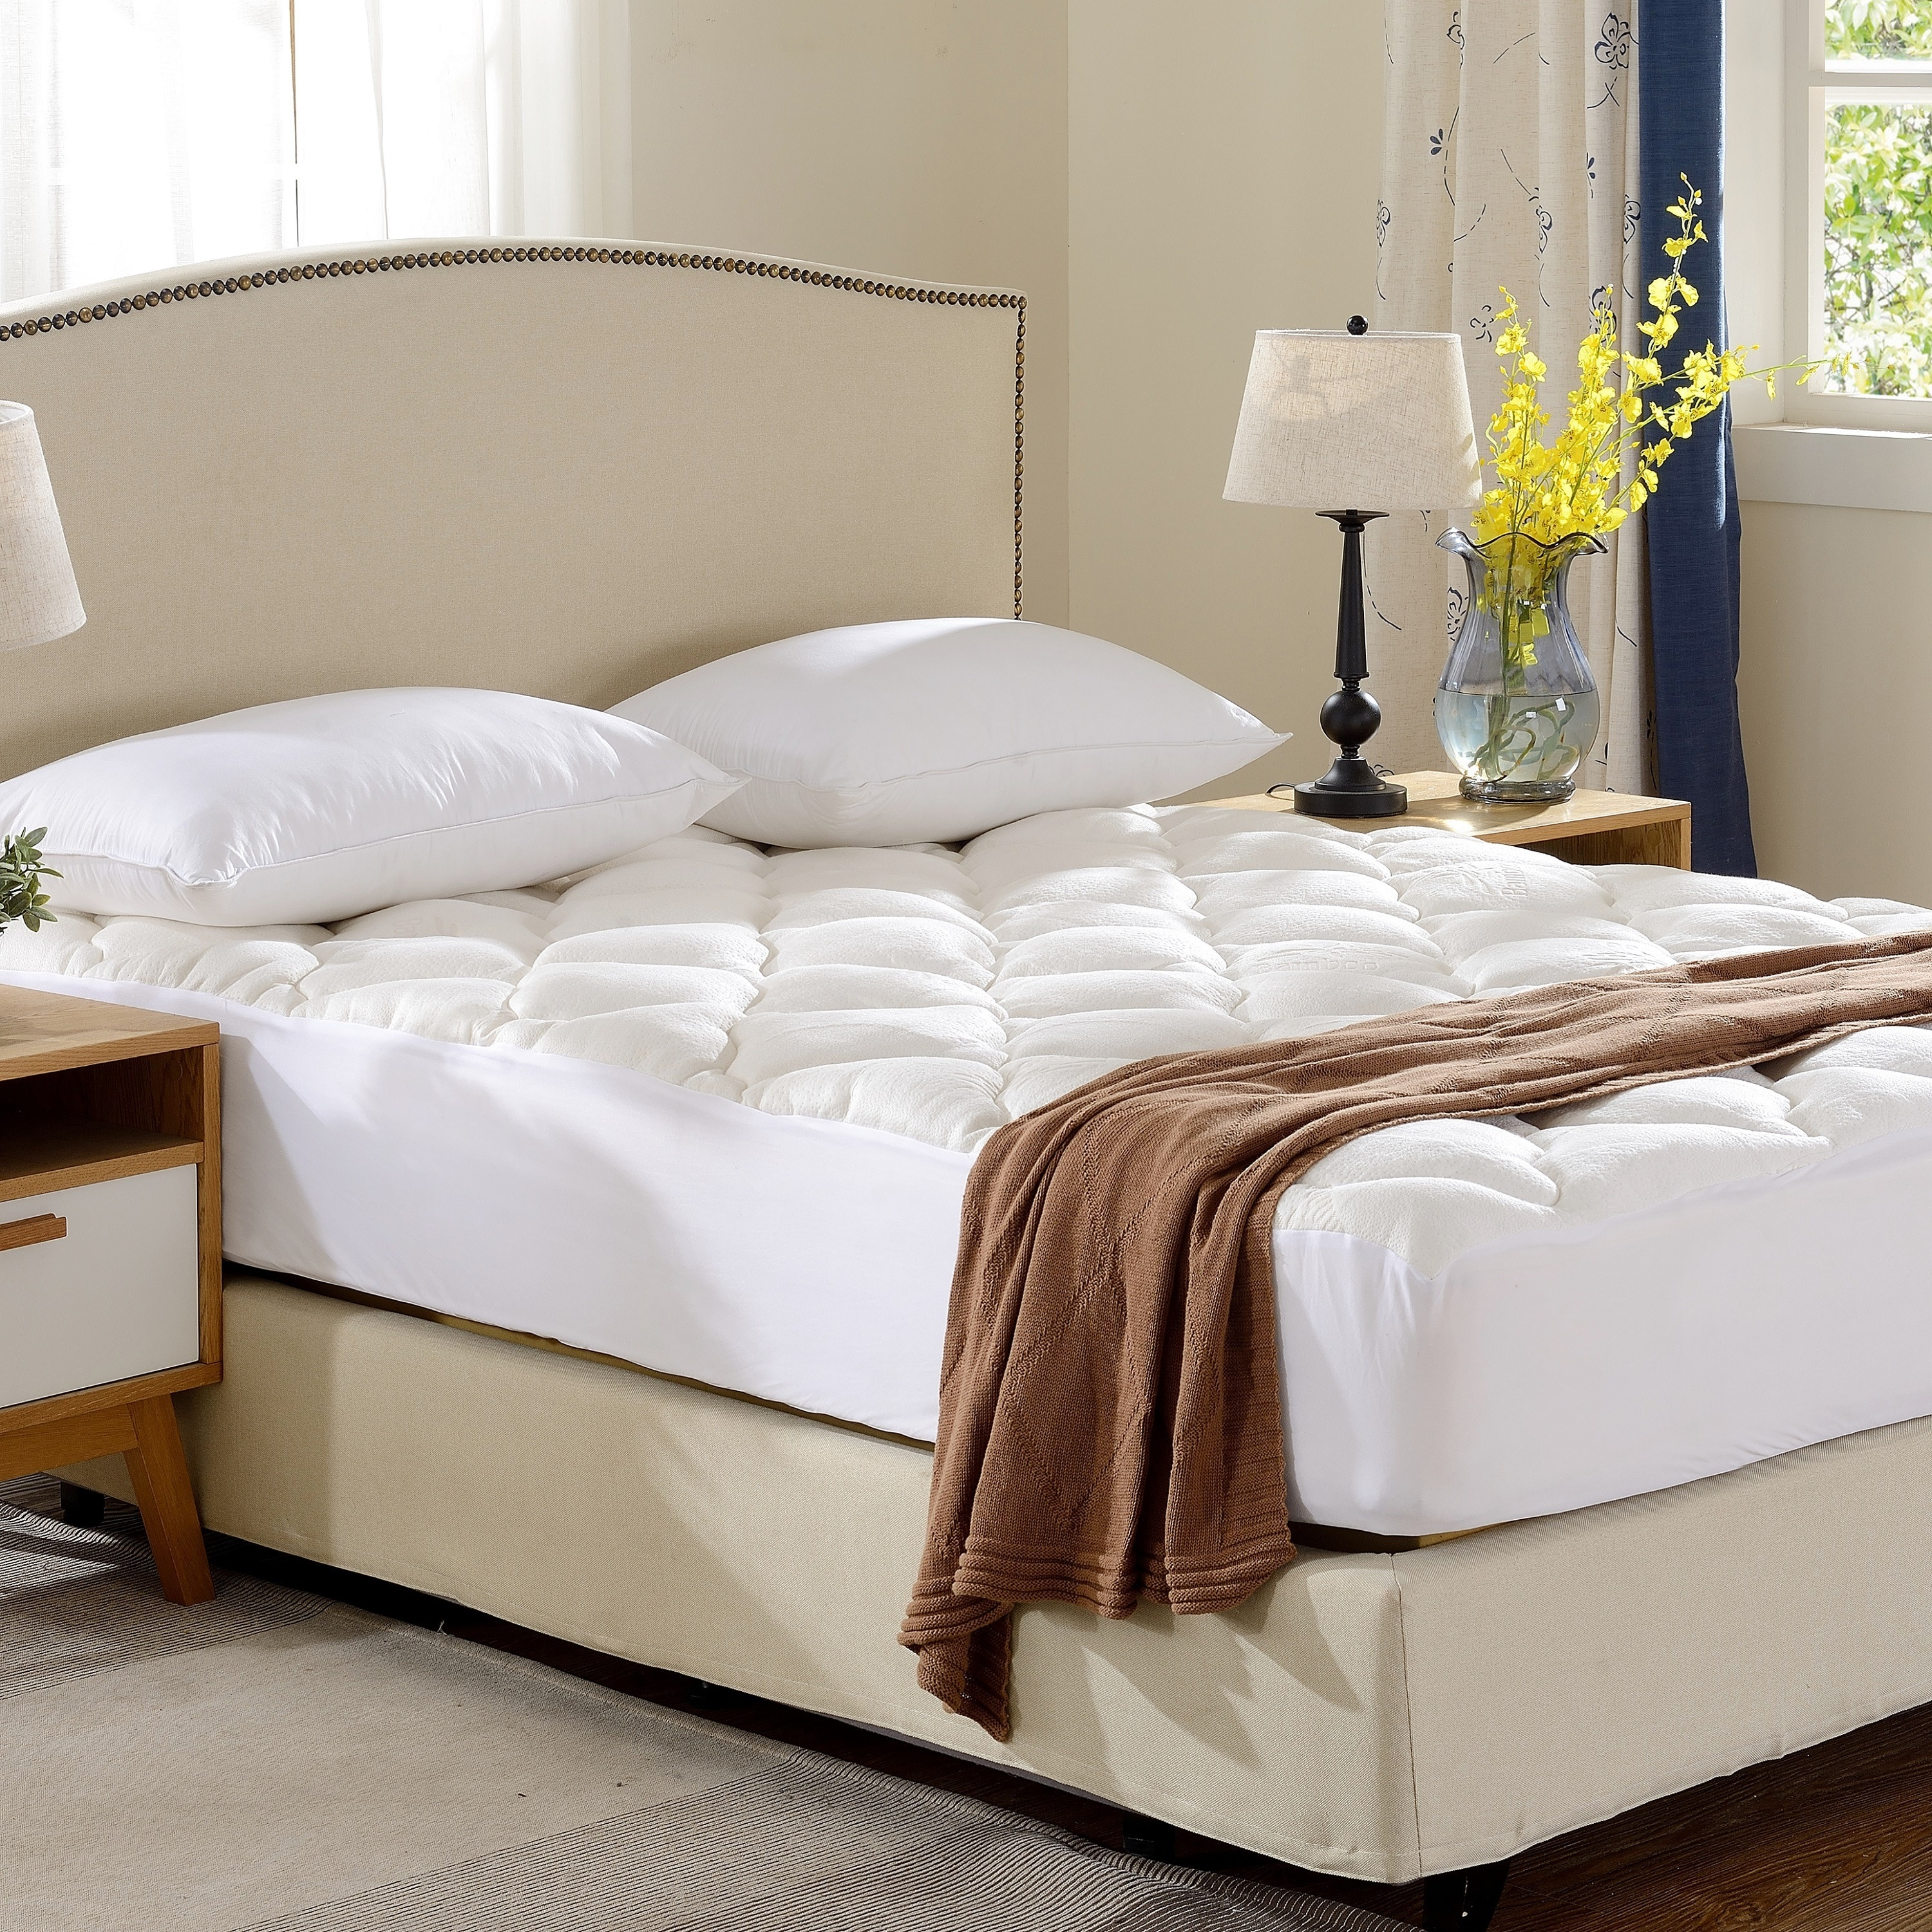 many be so blogs about the intimidating of perfect polyester selecting cottage organic know img blog choosing bed cotton sheets need weaves bamboo counts you to quail bedding different what dreamiest white choices thread can